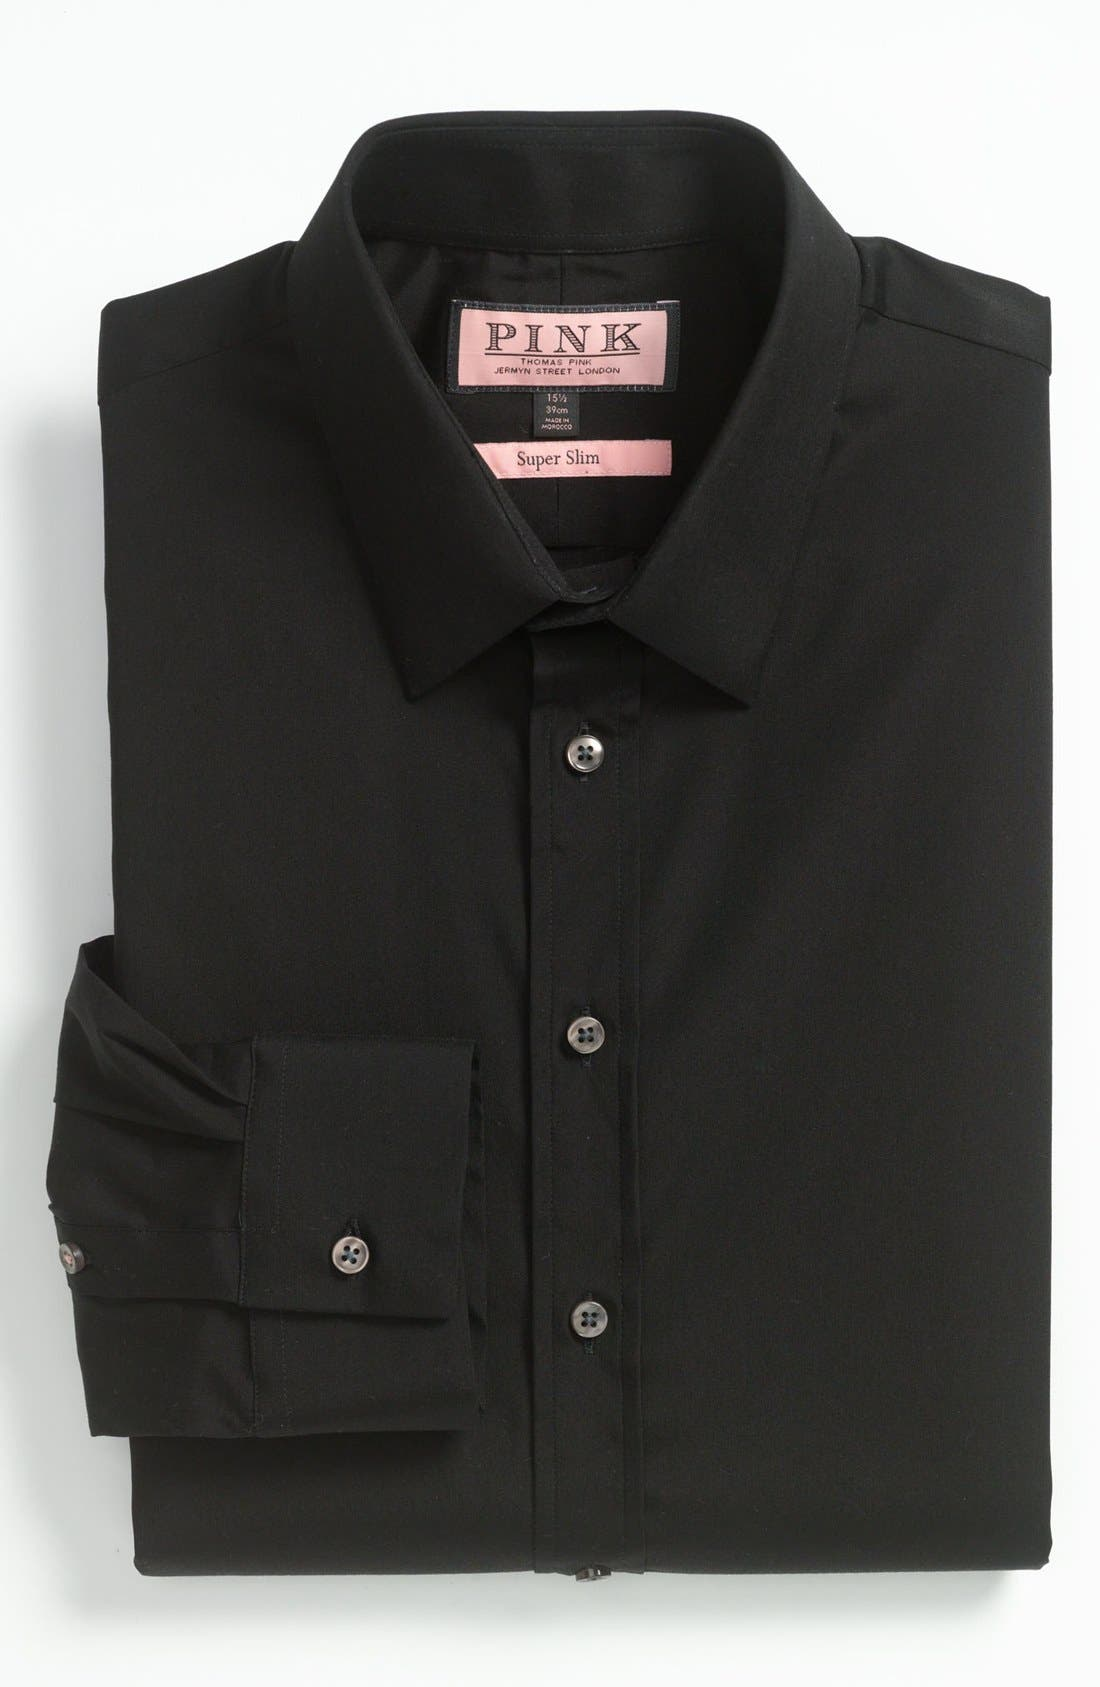 Main Image - Thomas Pink Super Slim Dress Shirt